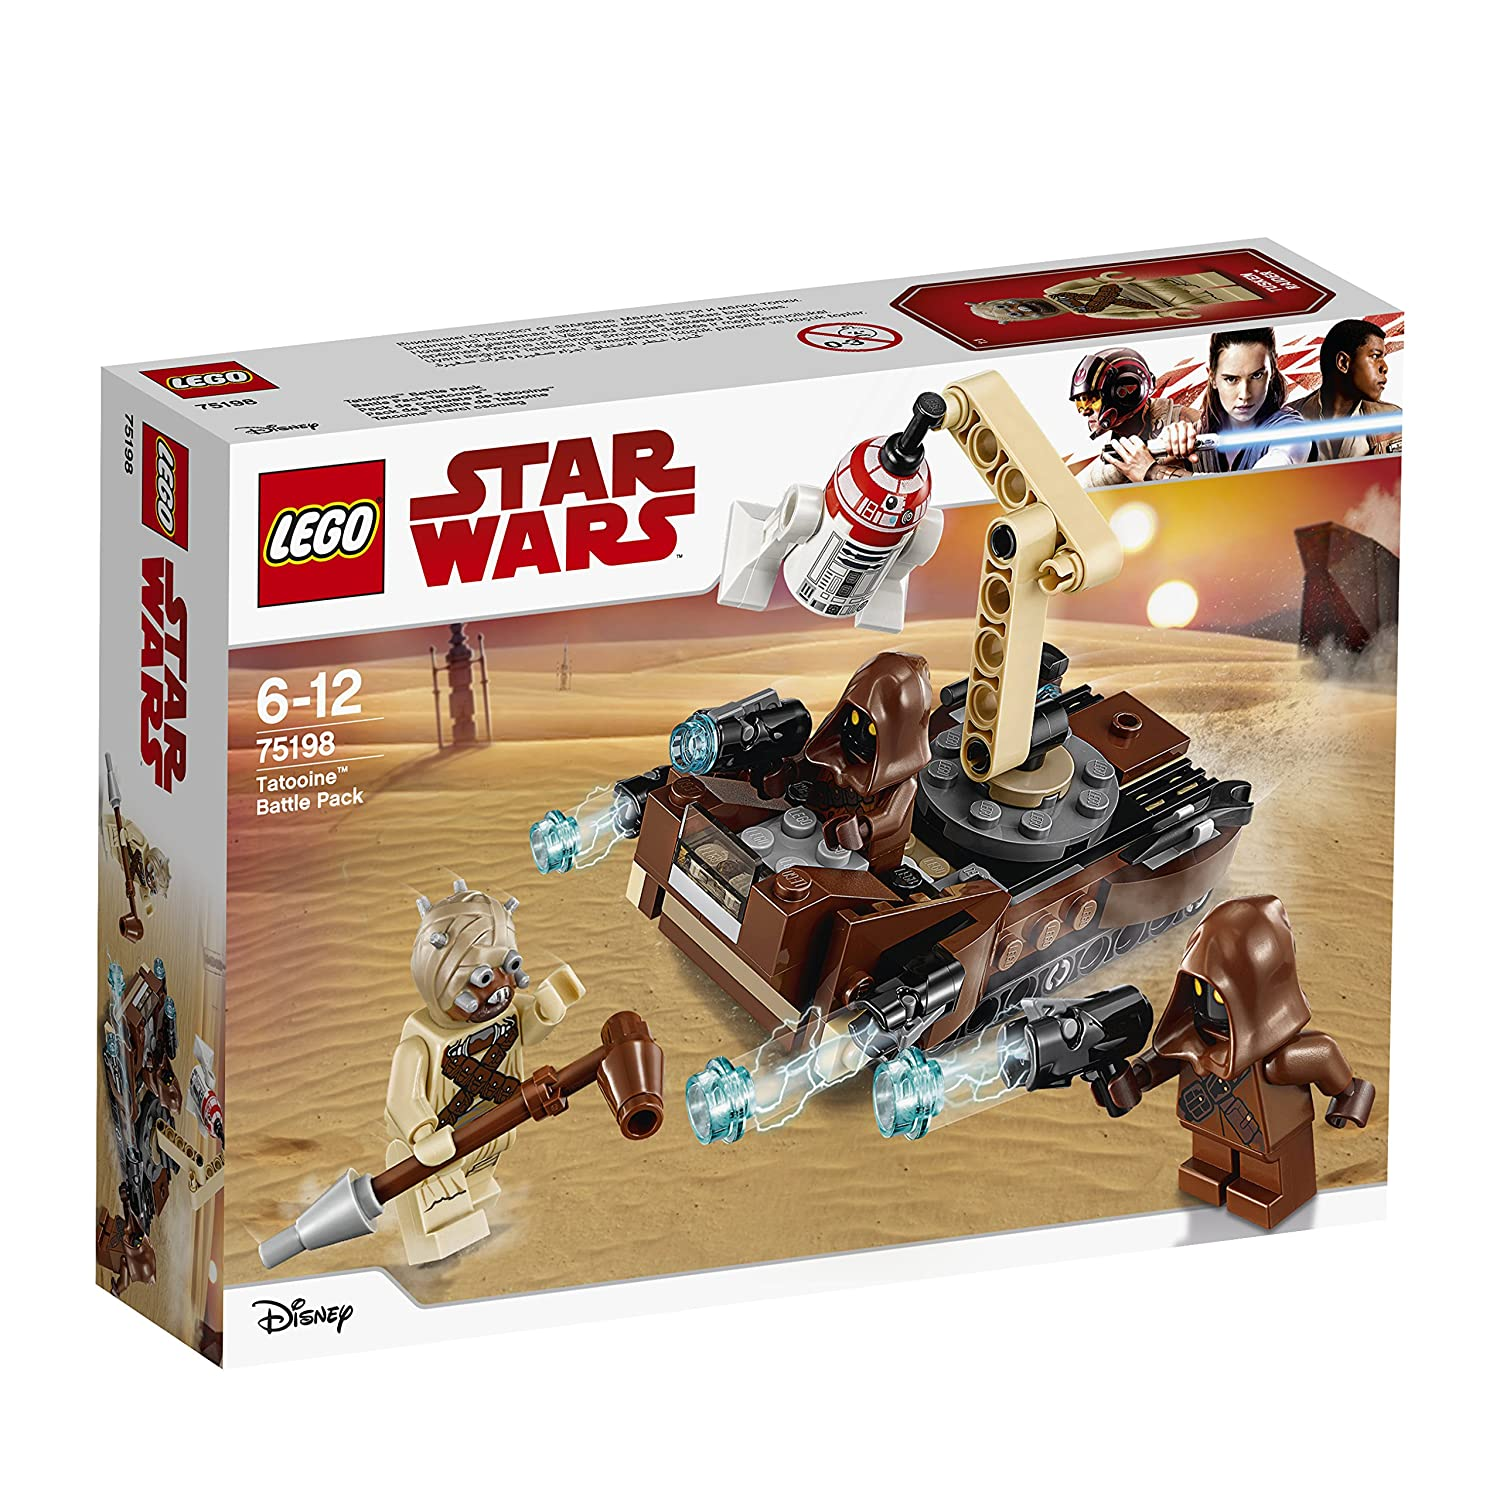 LEGO Star Wars - Battle Pack Tatooine - 75198 - Jeu de Construction